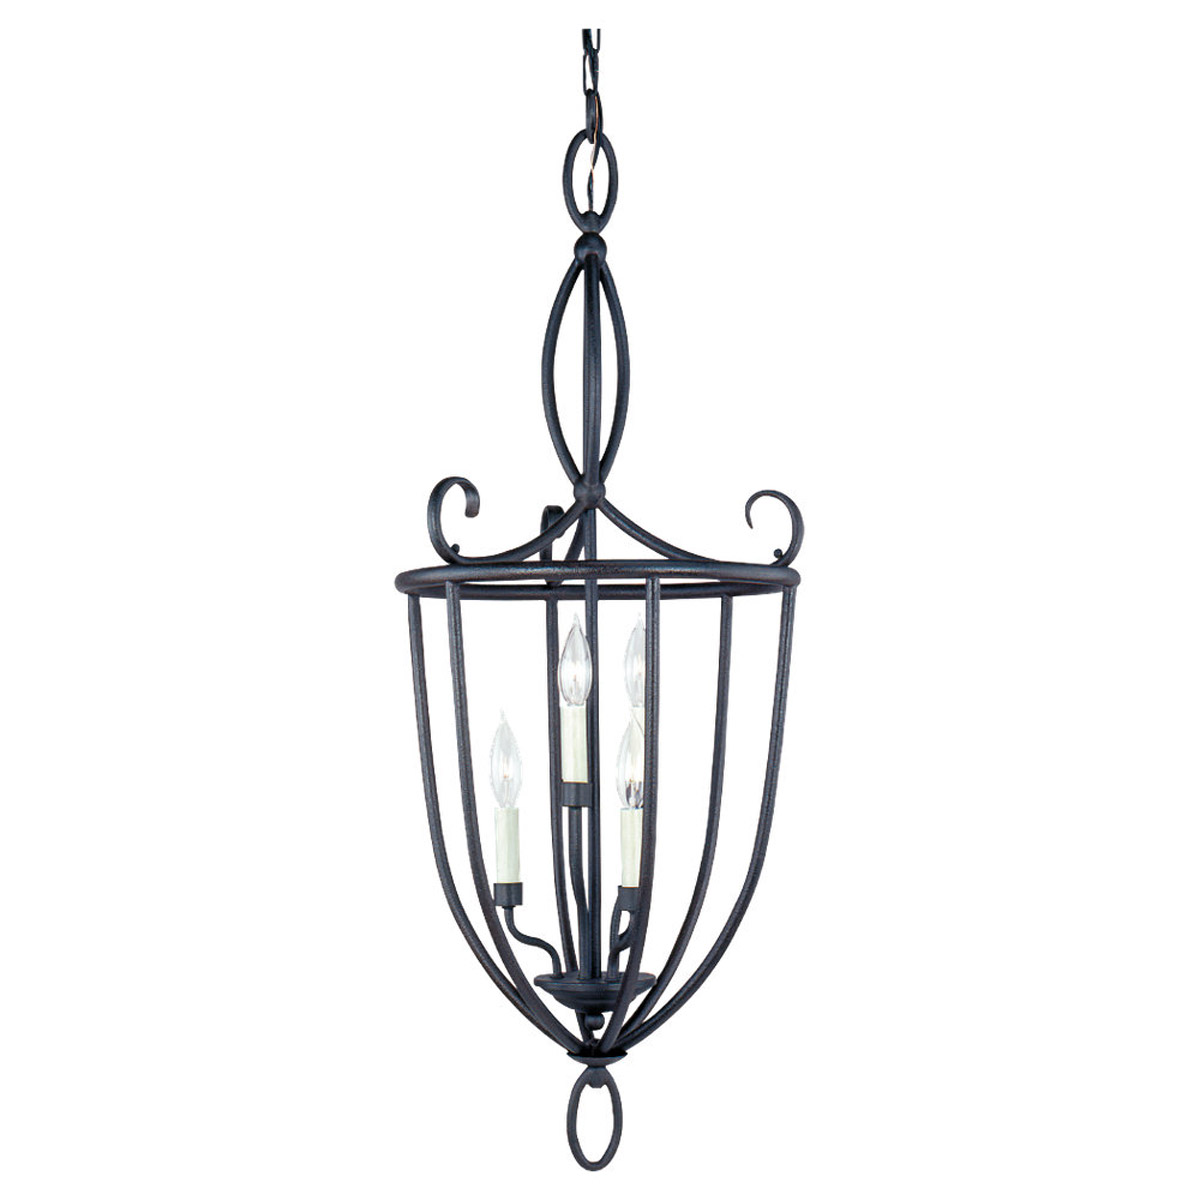 Sea Gull Lighting Pemberton 6 Light Foyer Pendant in Peppercorn 51075-799